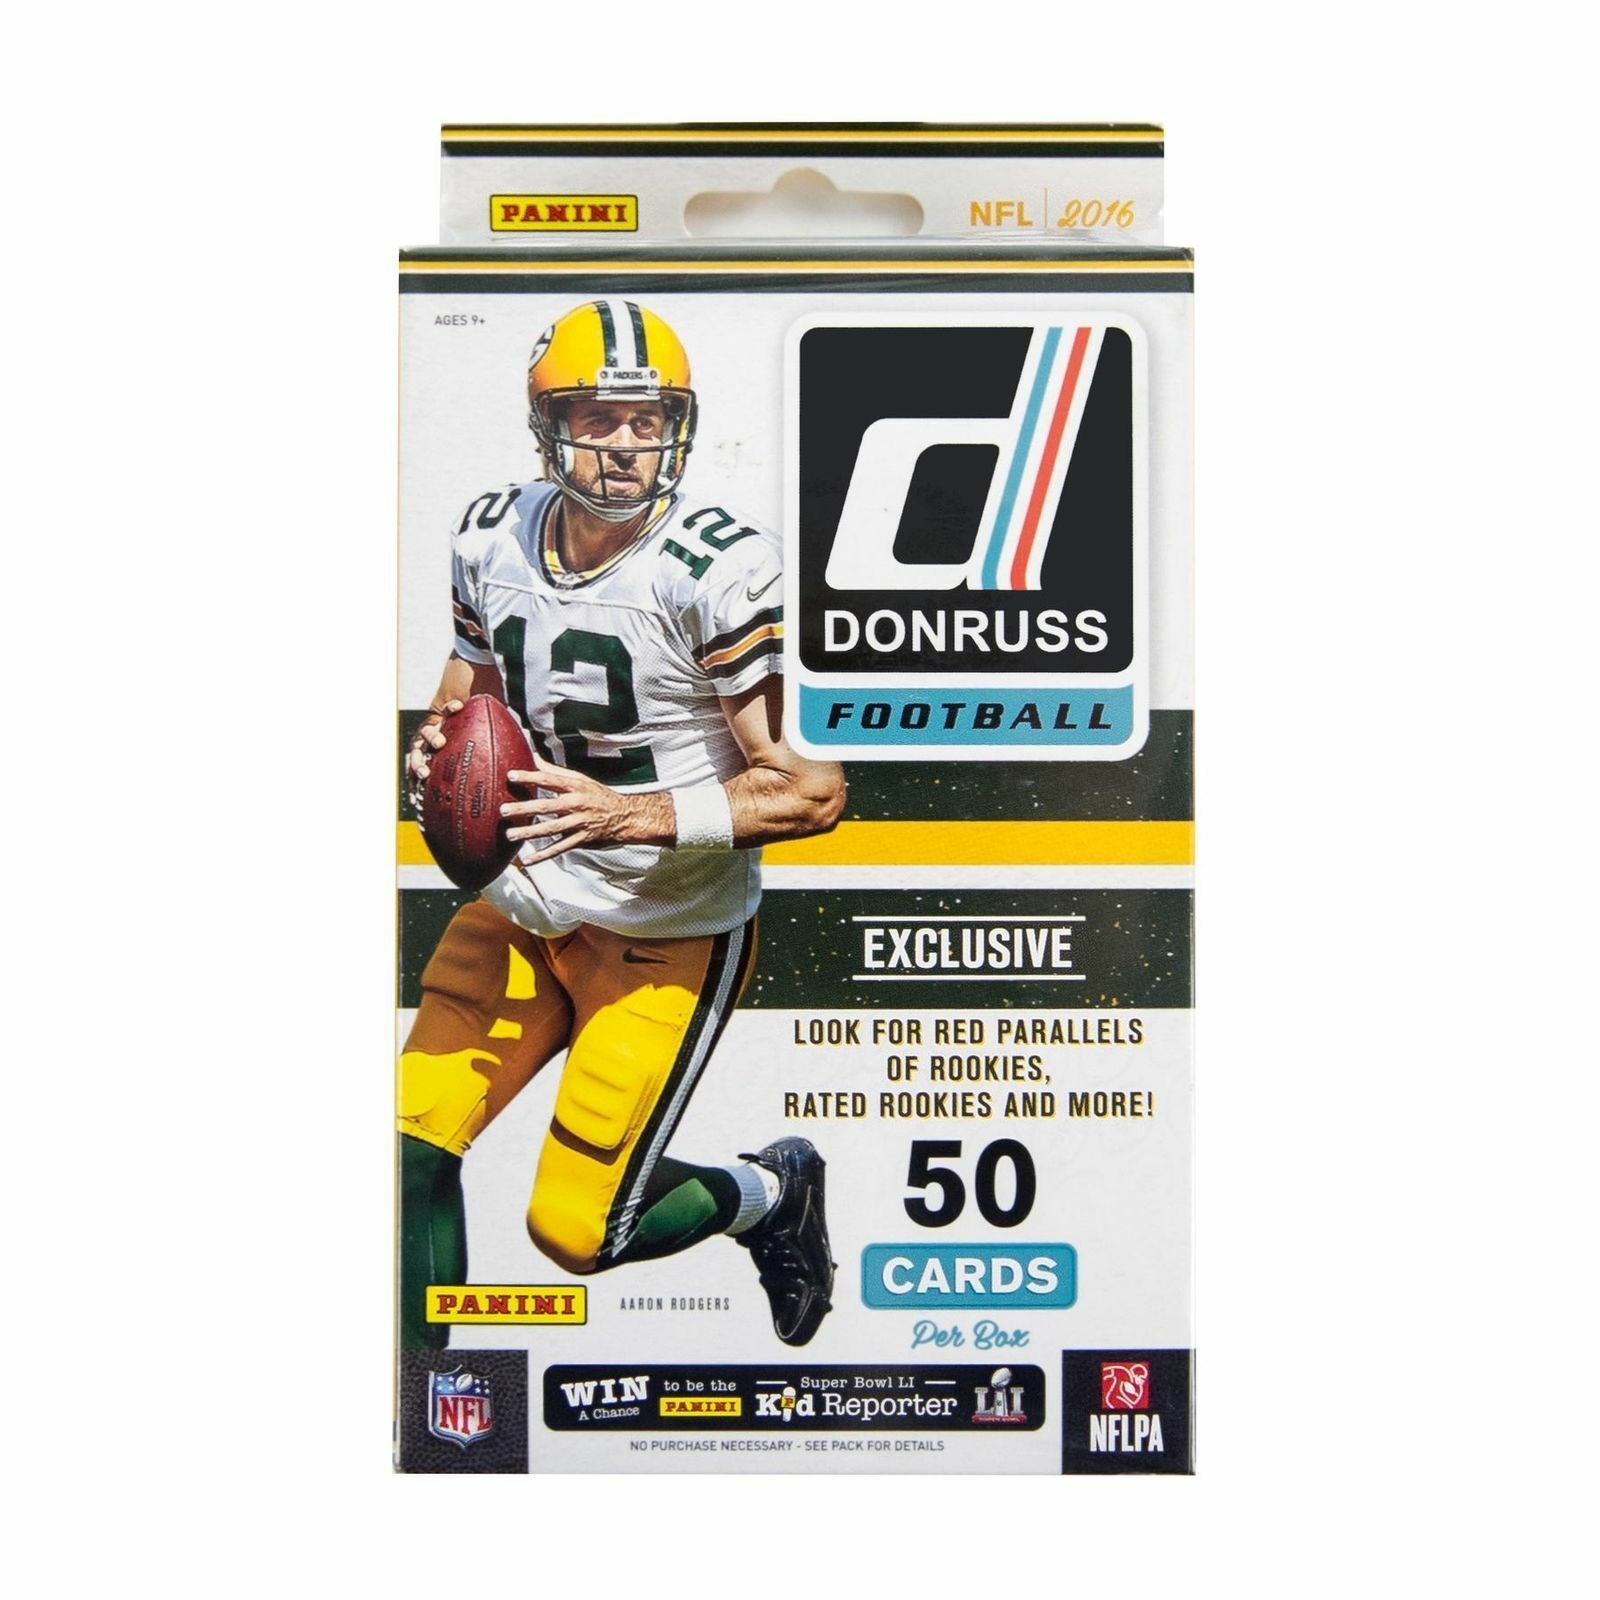 Primary image for 2016 PANINI Donruss Football 50 ct Hanger Box Pack Wentz & Prescott Rookies